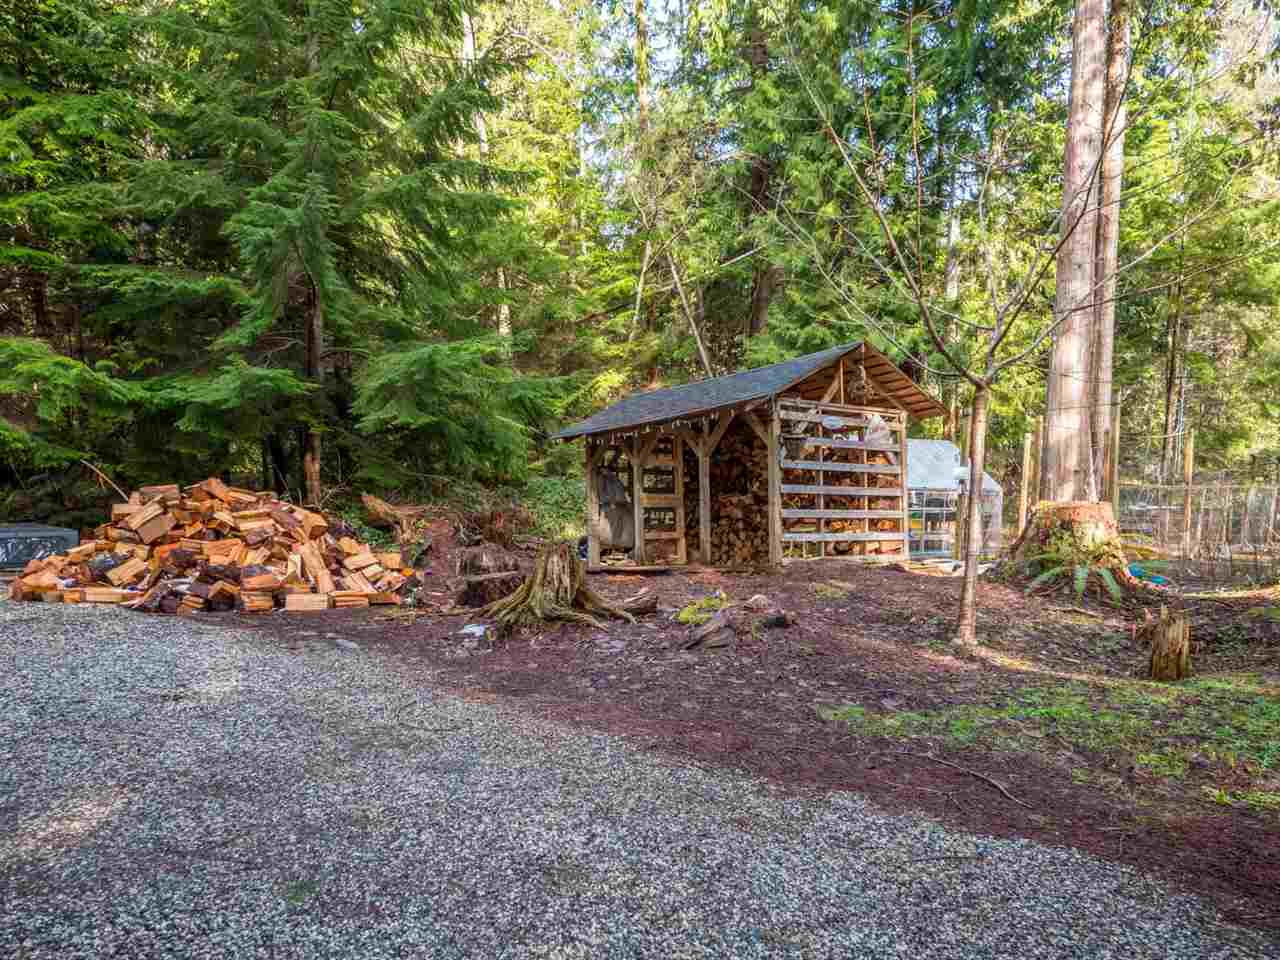 Photo 15: Photos: 1421 MARGARET Road: Roberts Creek House for sale (Sunshine Coast)  : MLS® # R2243186